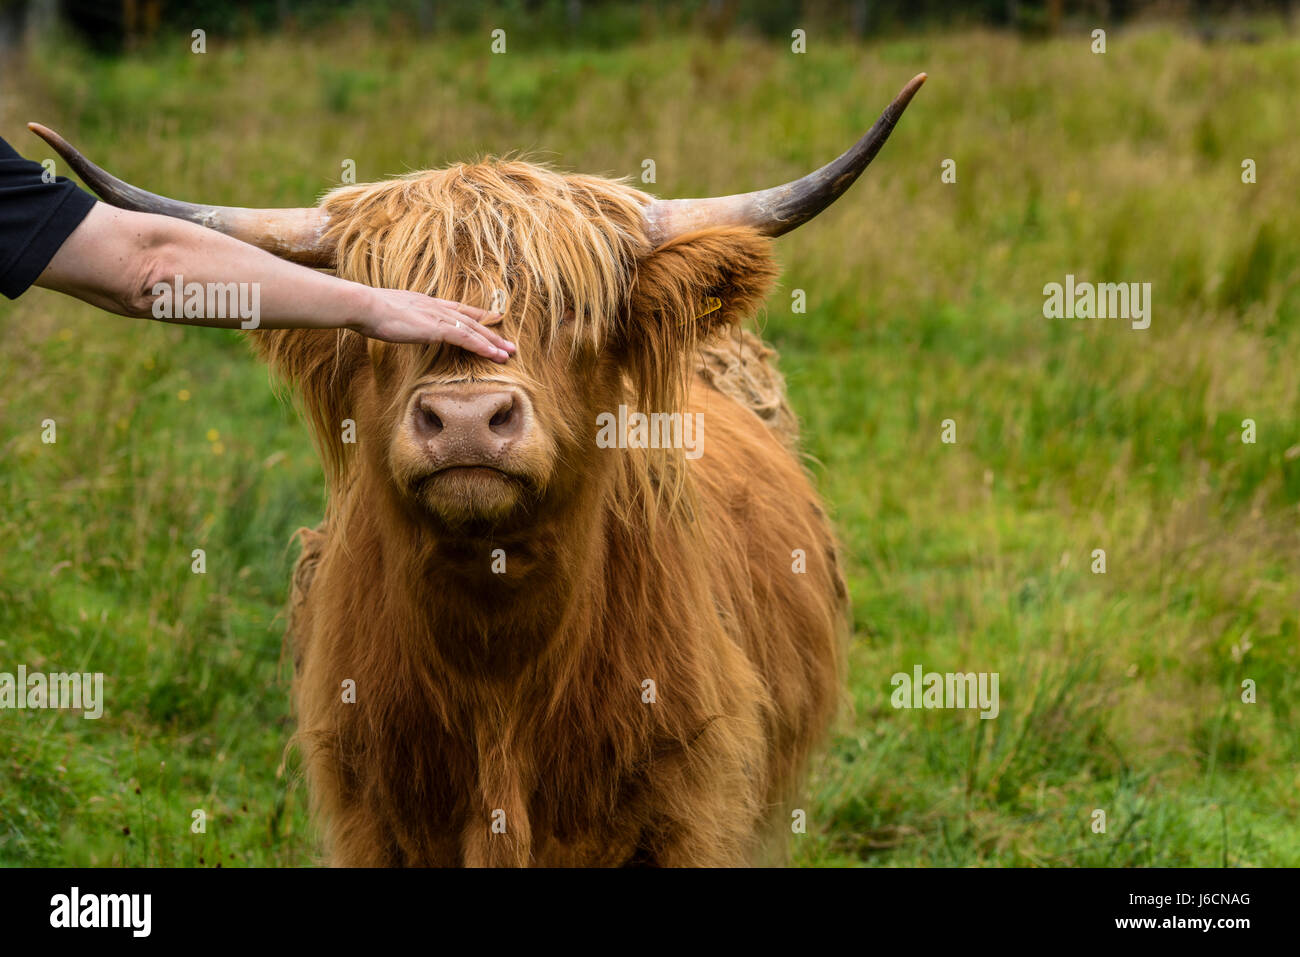 Stroking a cute cow.  highland cattle, Highlands, Scotland, United Kingdom - Stock Image